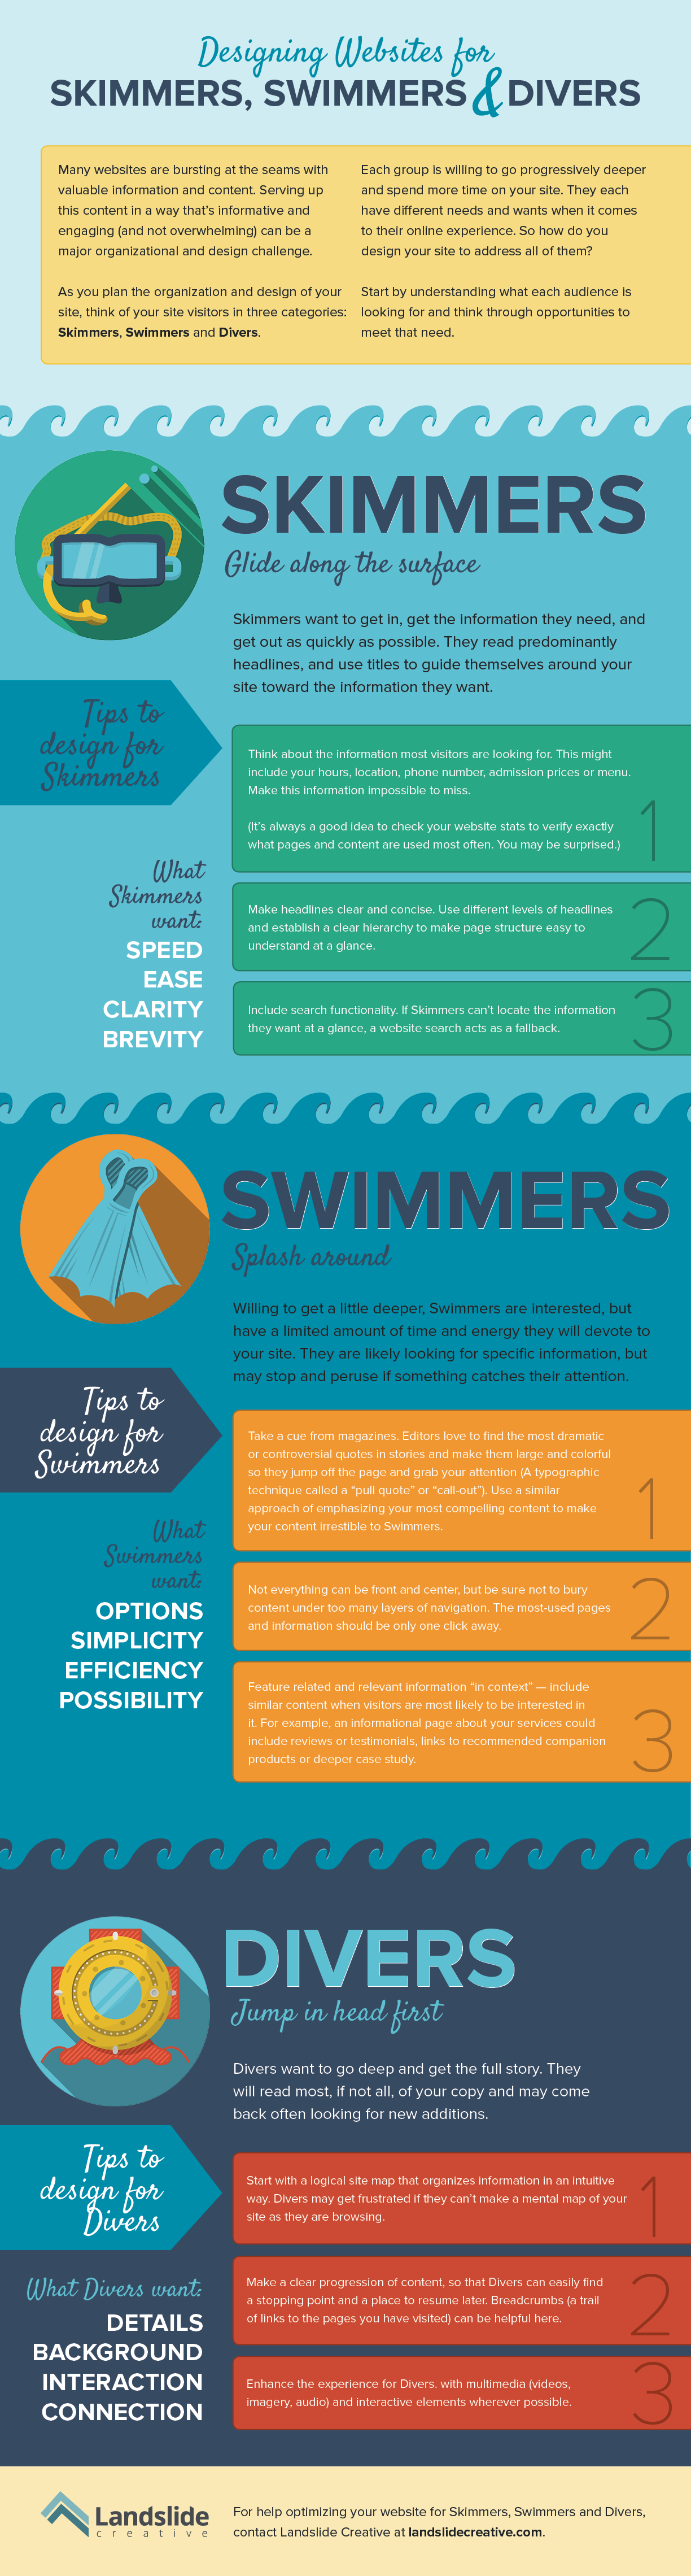 Skimmers, swimmers y divers